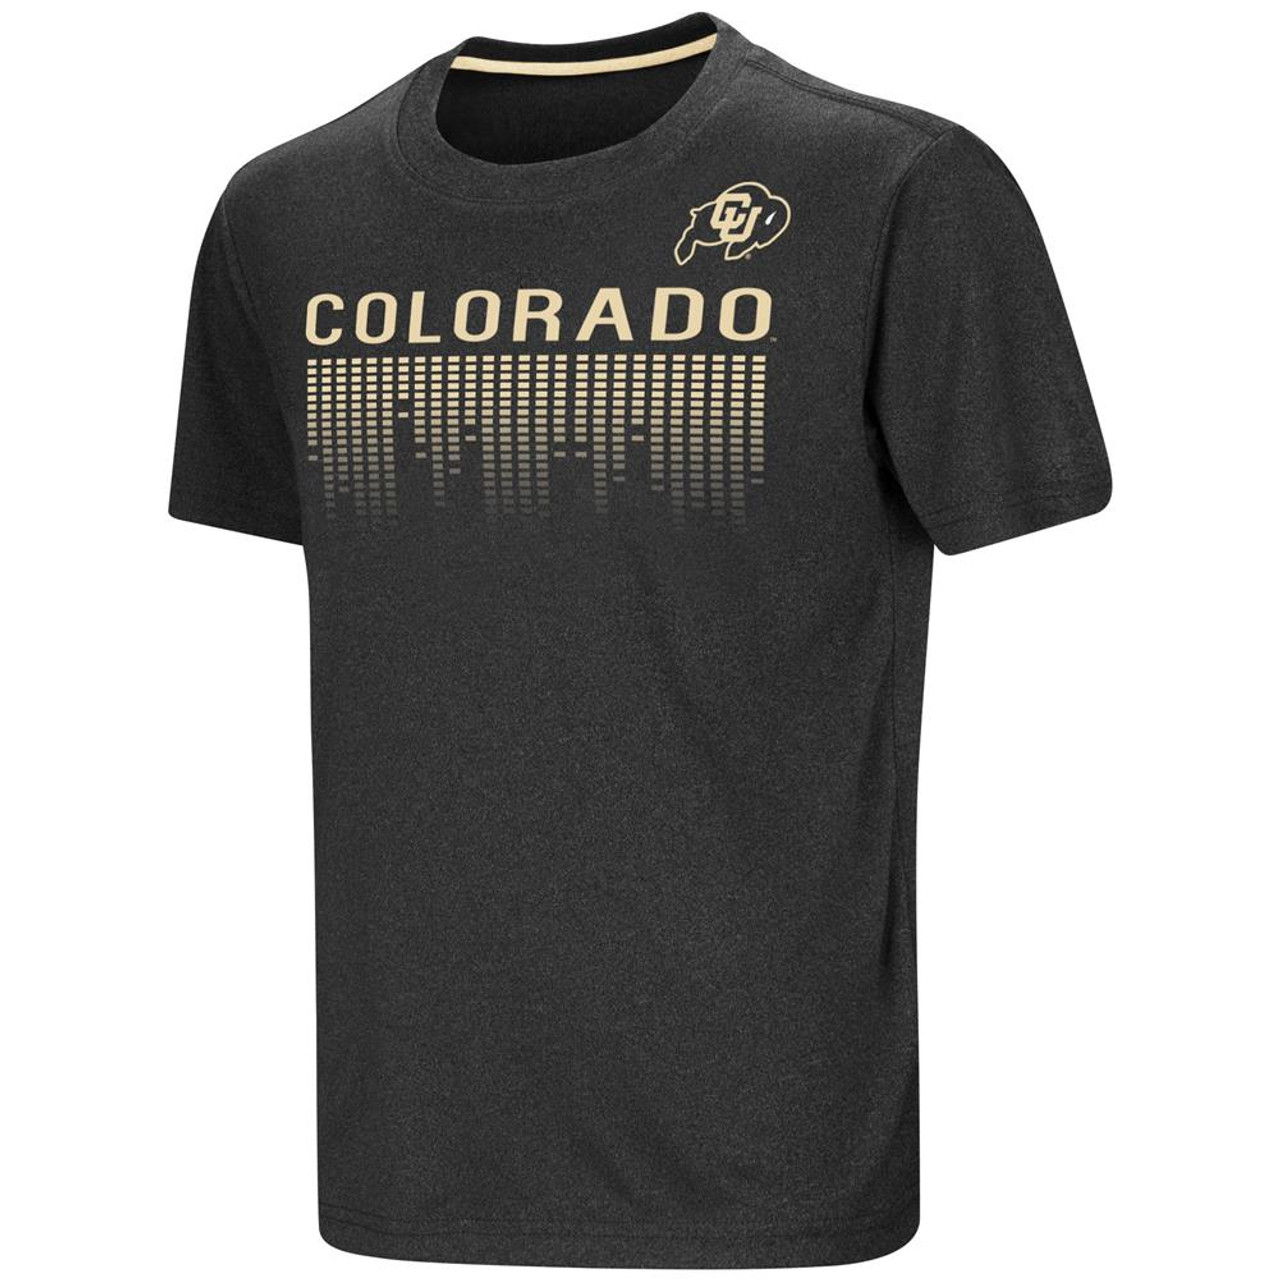 University of Colorado Buffaloes Youth T-Shirt Perforrmance Athletic Shirt